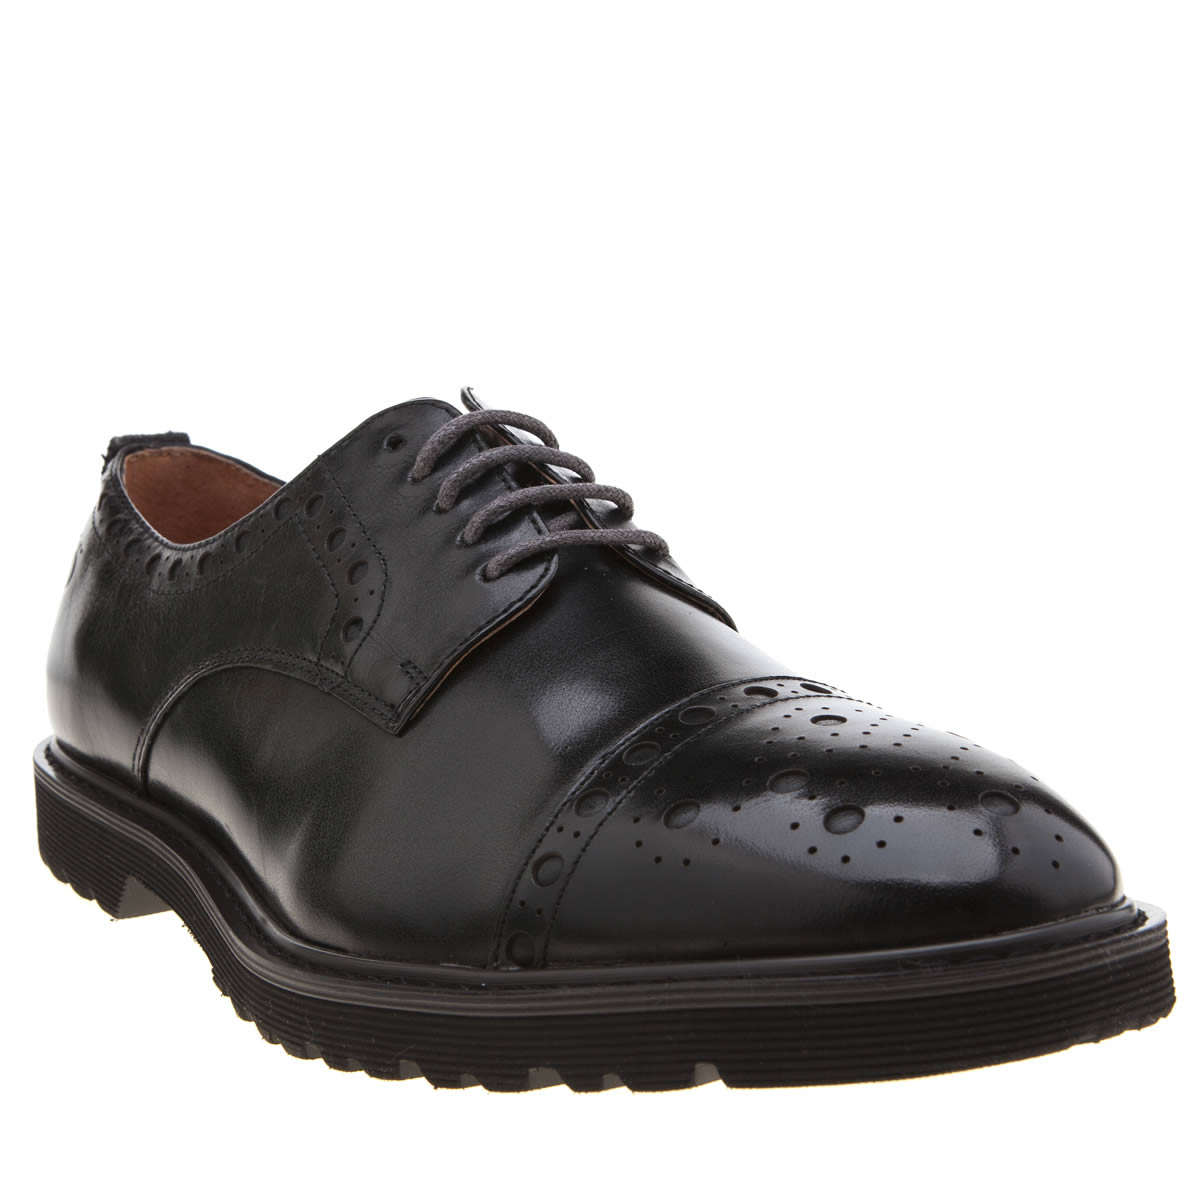 Peter Werth Peter Werth Black Laurie Brogue Shoes